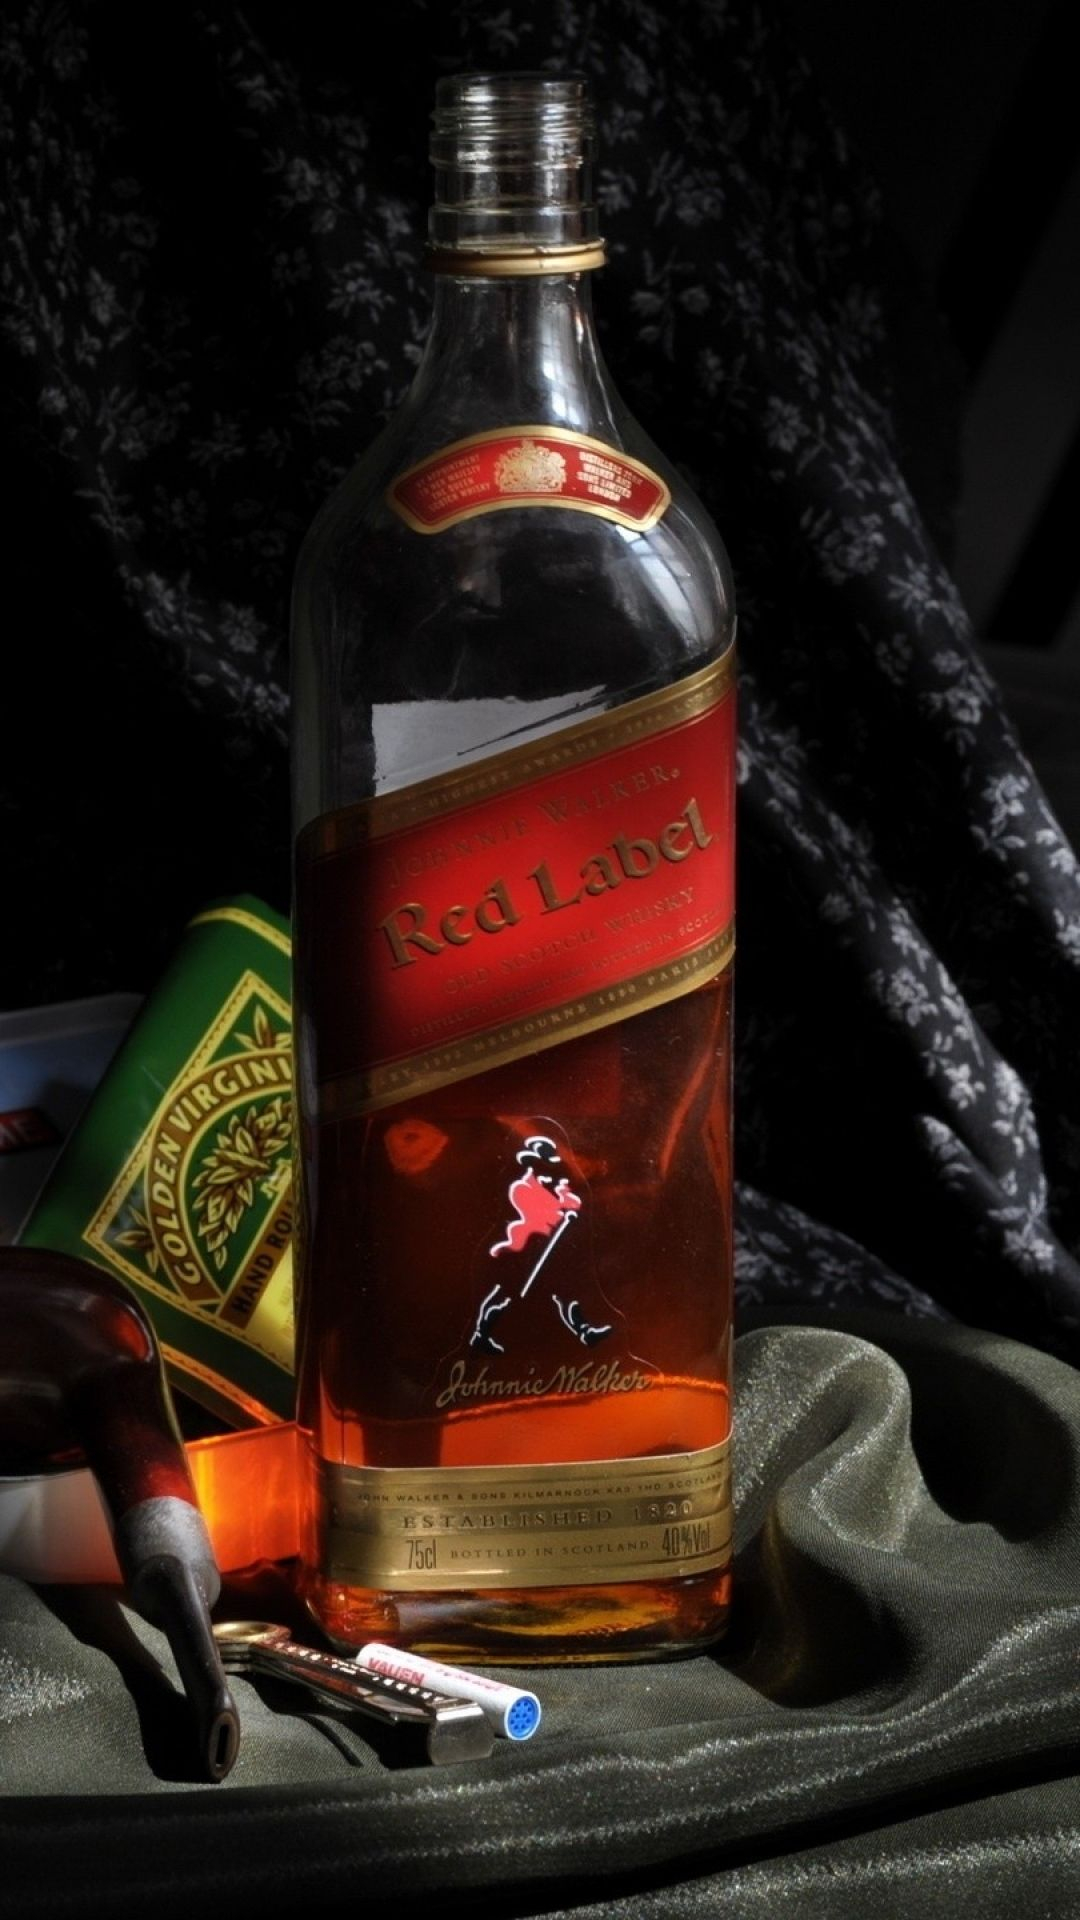 Download Wallpaper 1080x1920 Red Label Johnnie Walker Whiskey Johnnie Walker Wine Wallpaper Walker Wallpaper